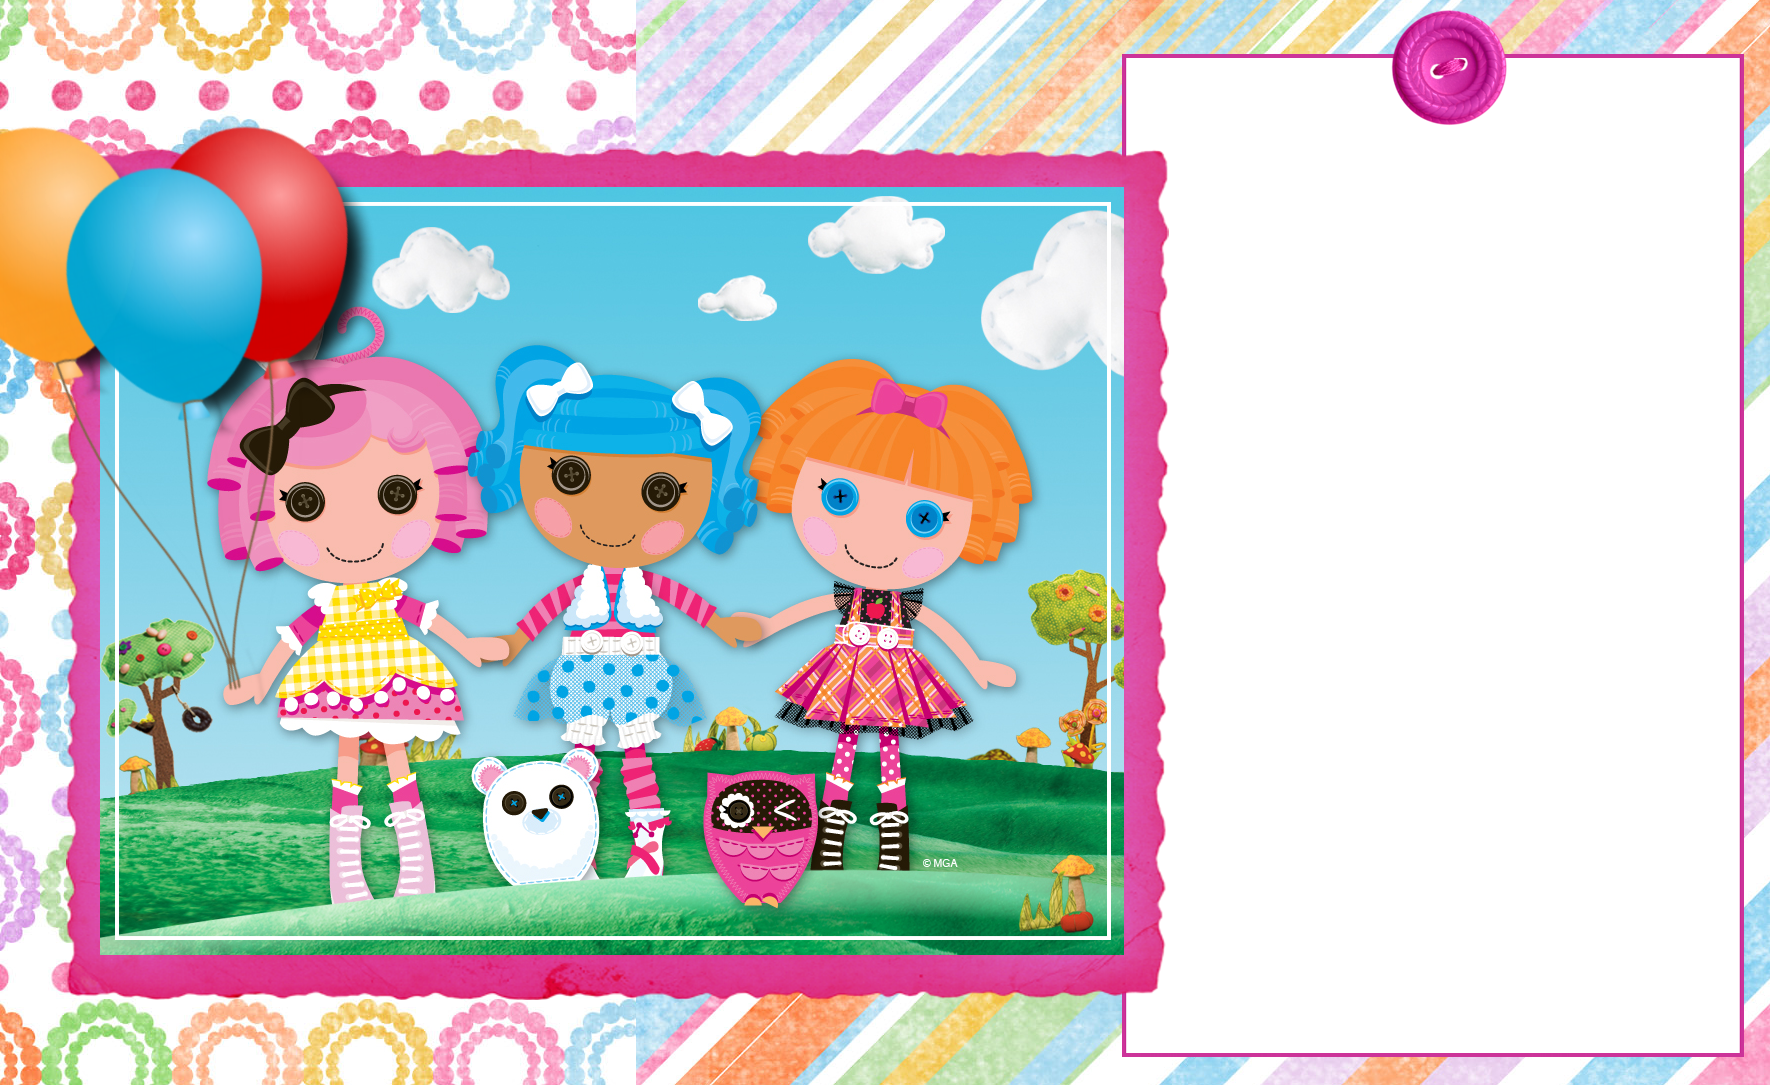 FREE CUSTOMIZABLE INVITATION FOR LALALOOPSY PARTY glad if you